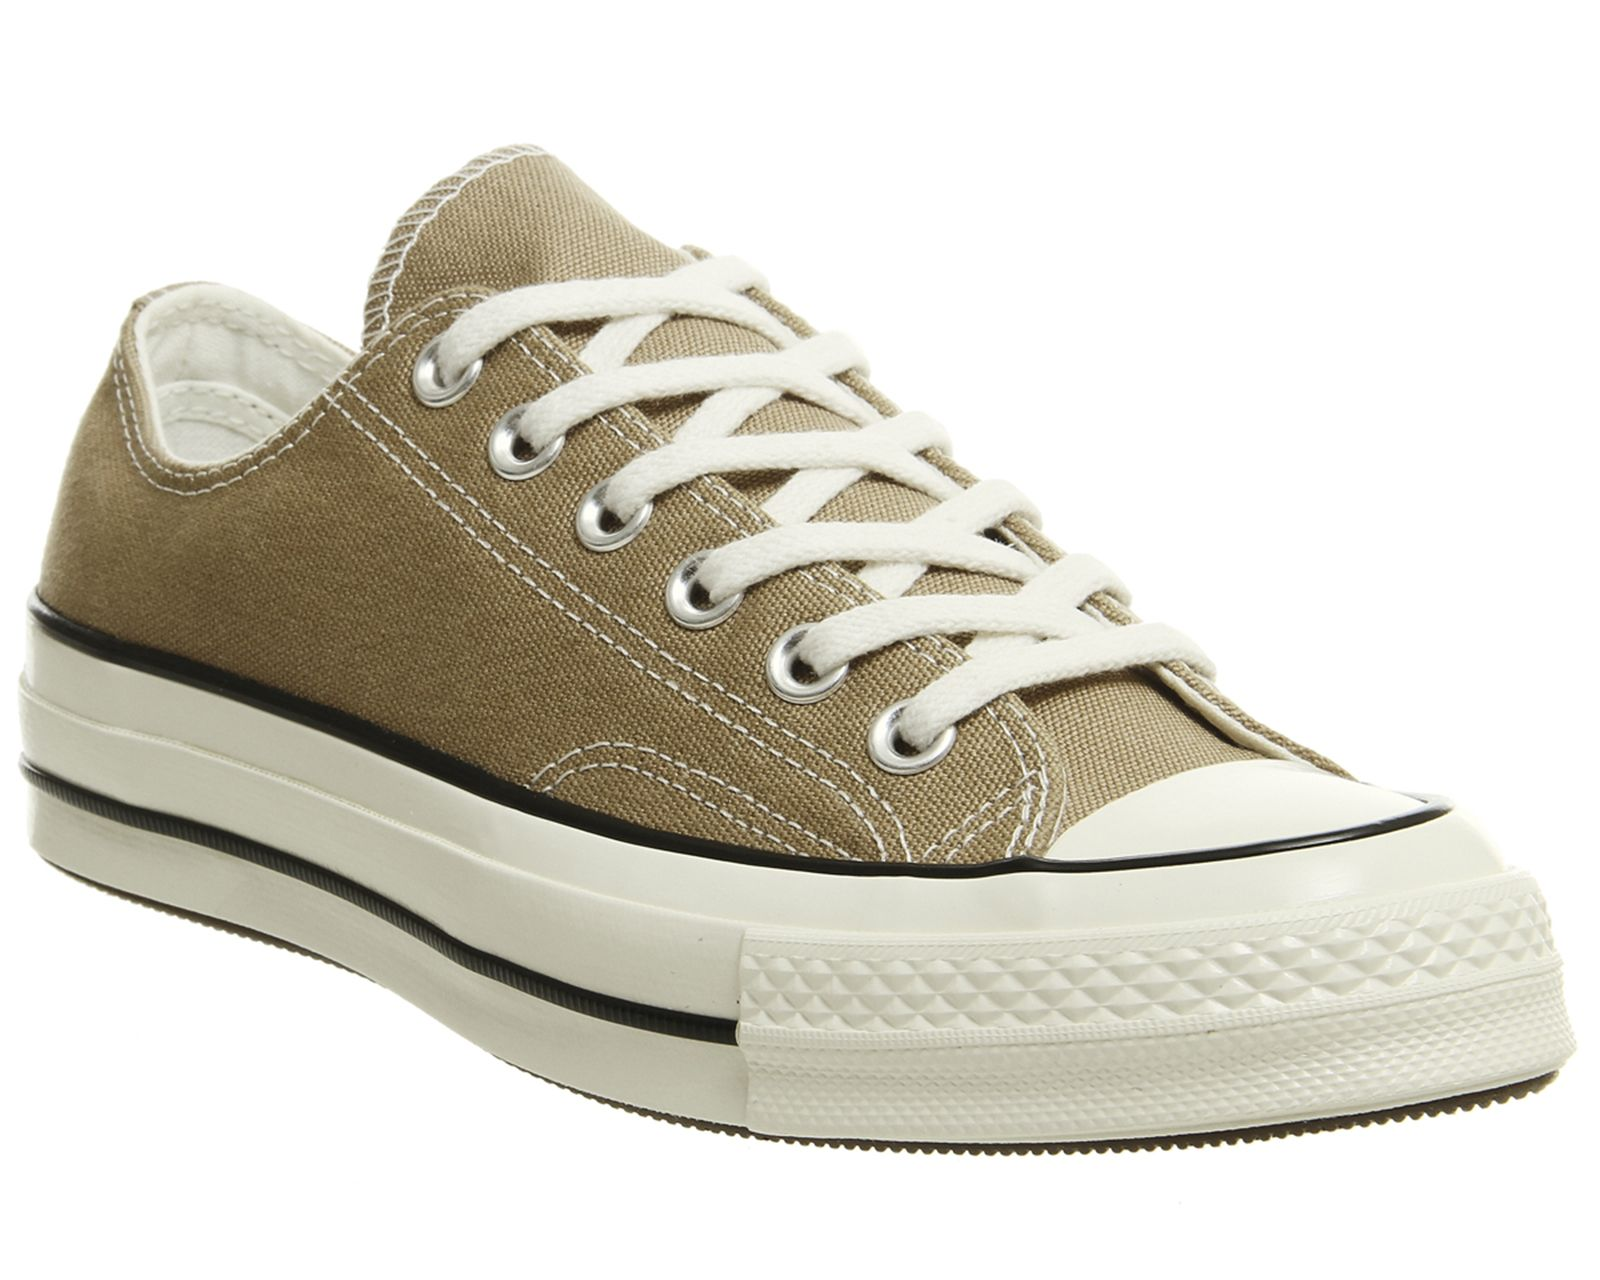 Converse All Star Ox 70s Trainers Teak